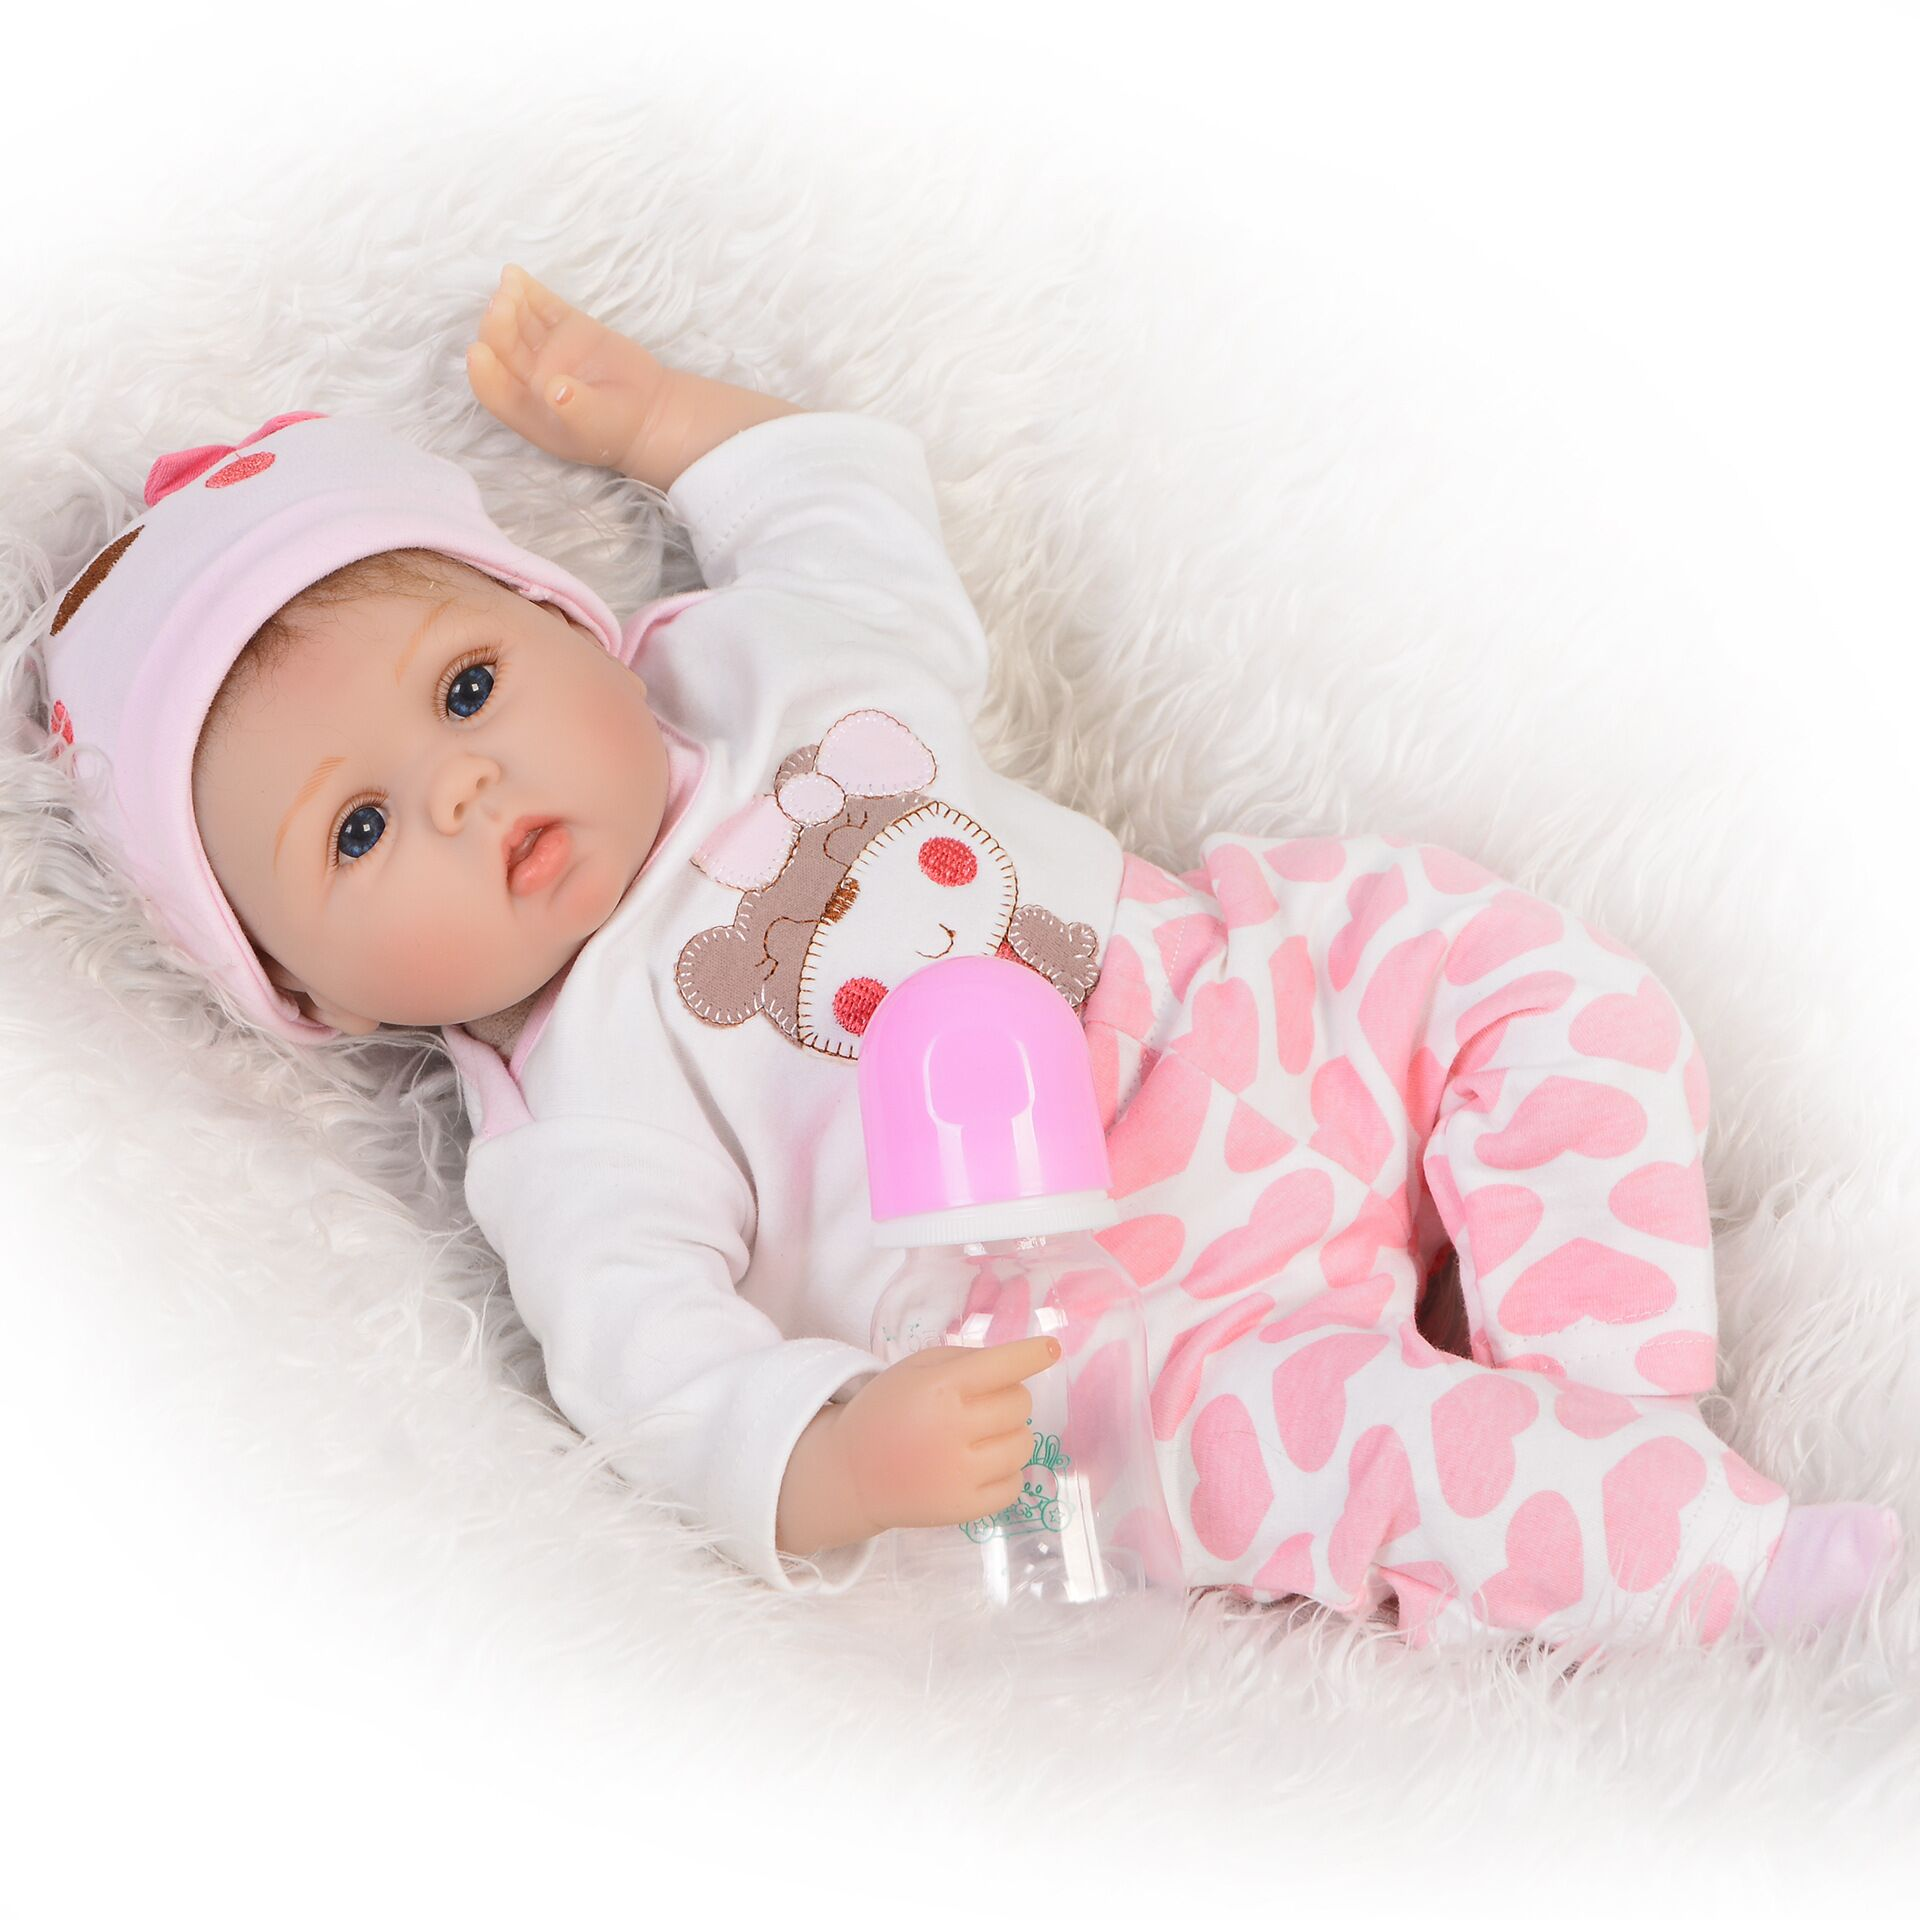 real full body silicone baby bonecas bebe reborn baby doll